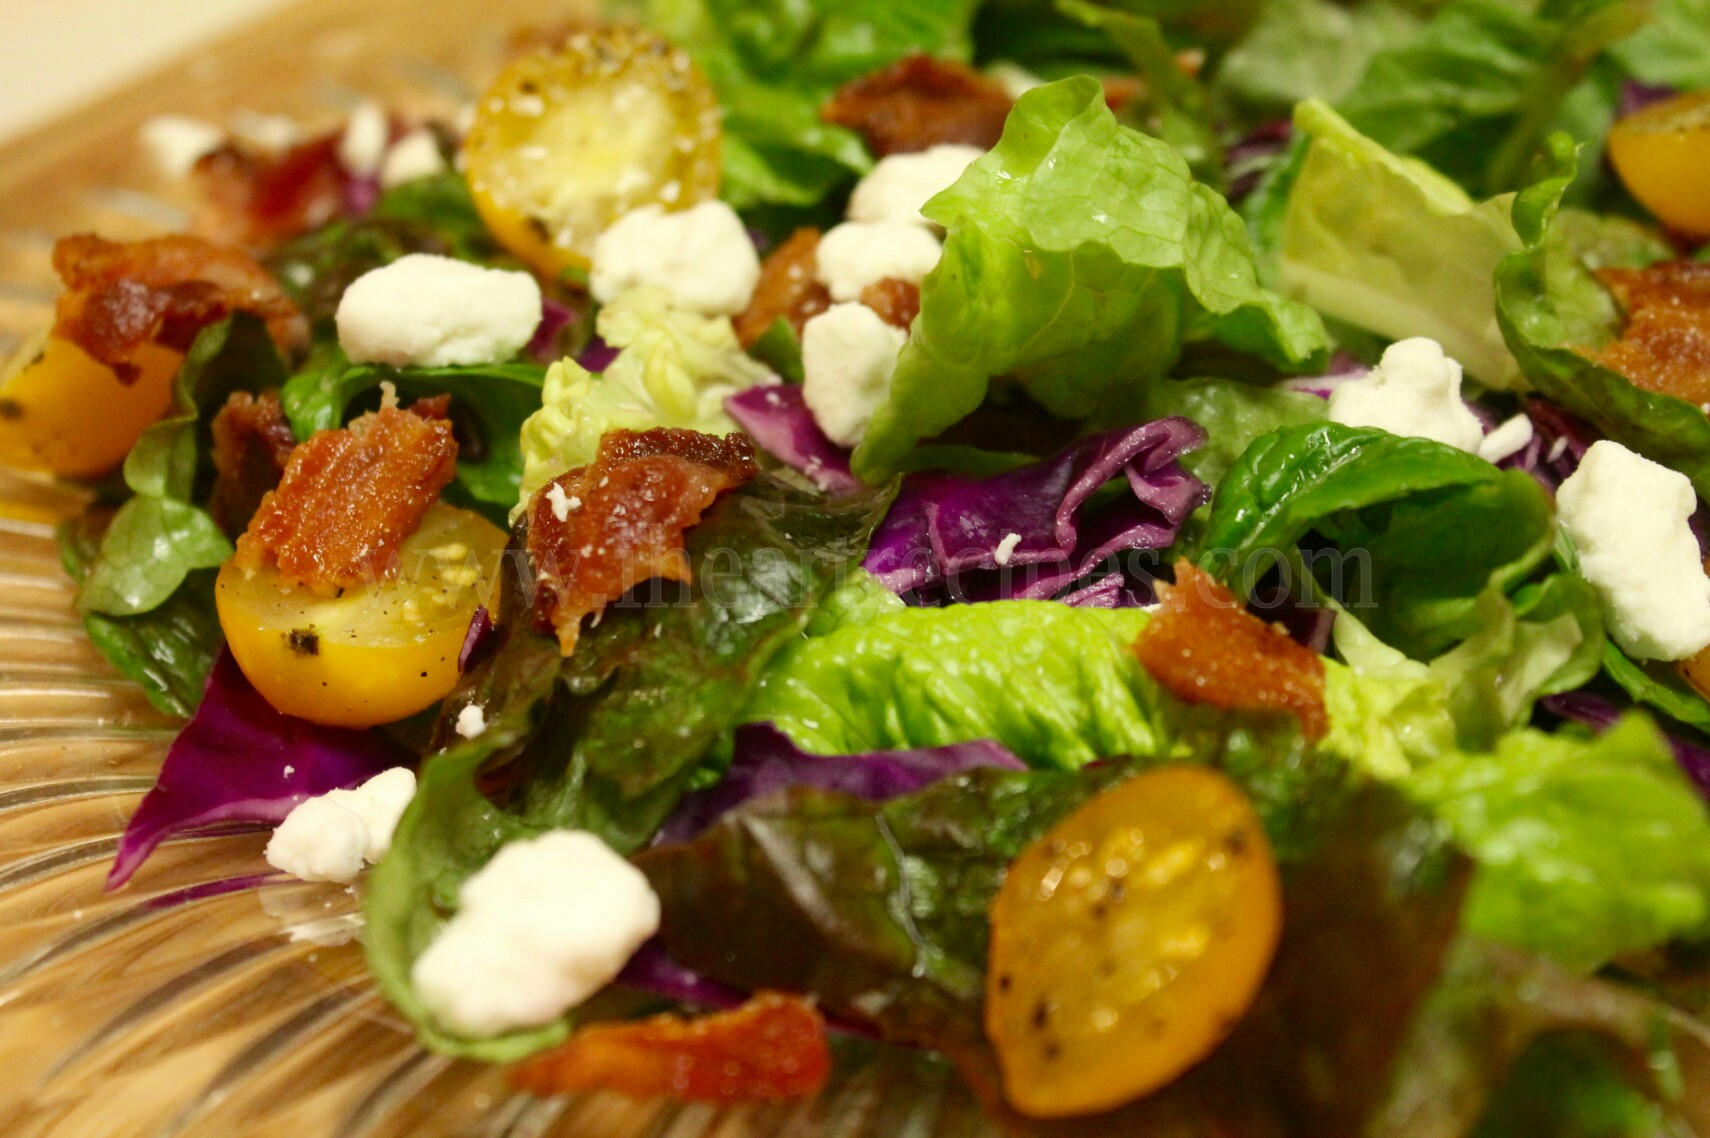 This bacon and goat cheese spring salad can be topped with anything you'd like, from tomatoes to croutons or walnuts